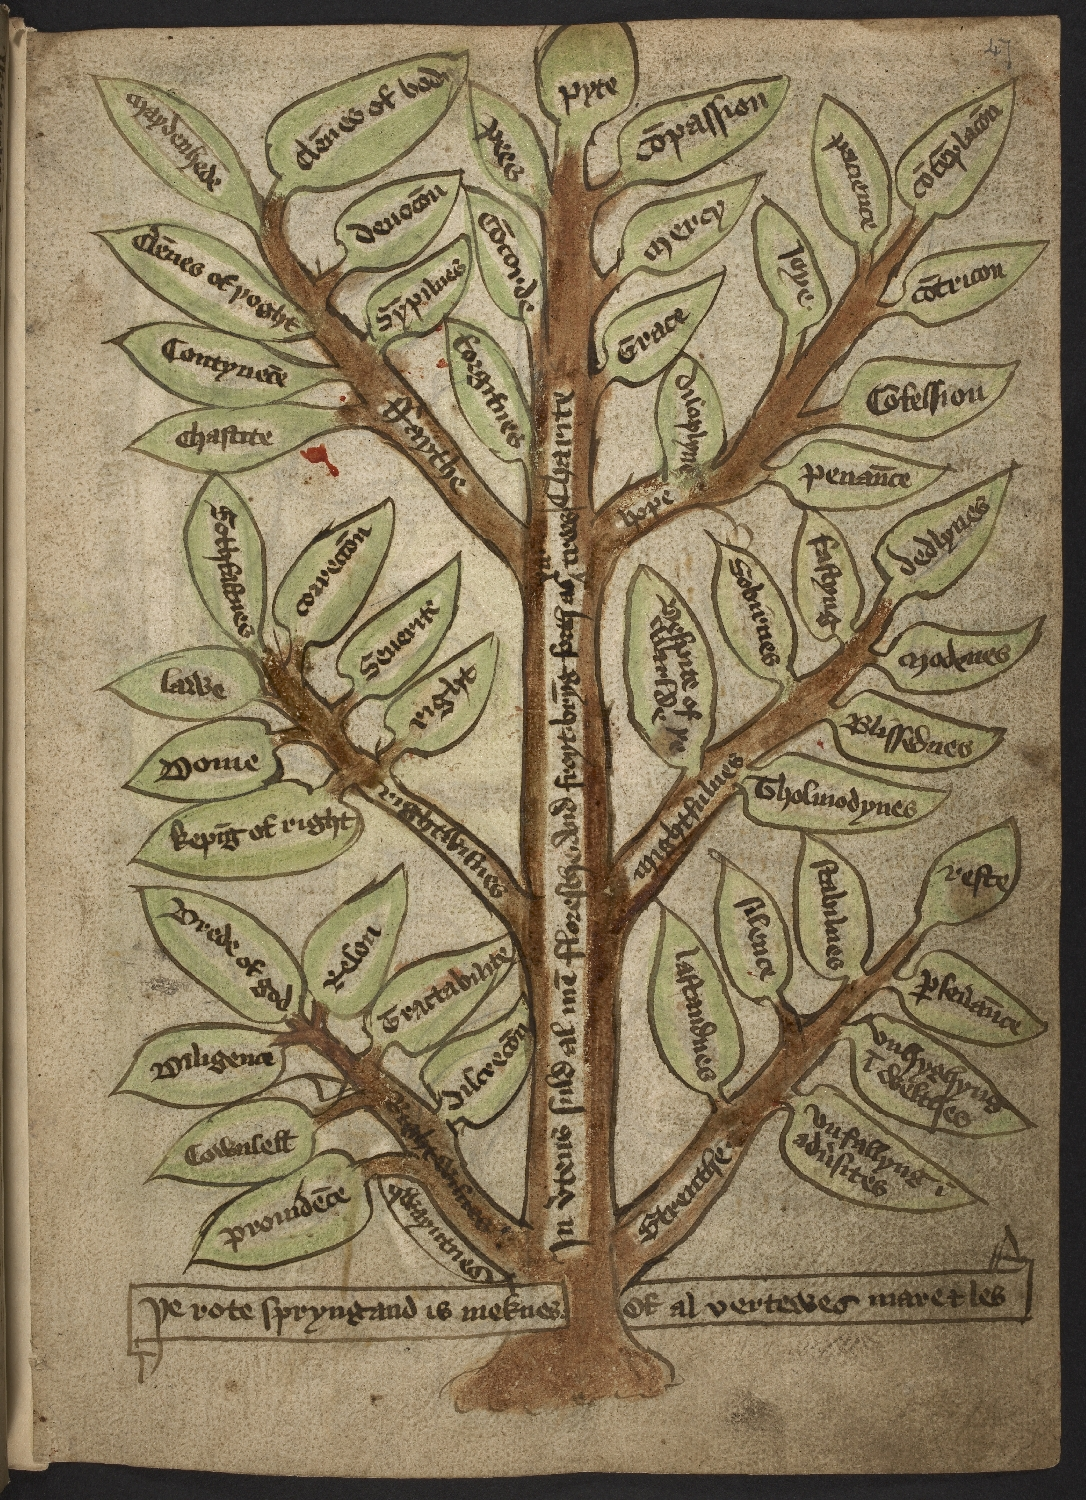 Wandering in the desert of religion medieval manuscripts blog addms37049f047r ccuart Gallery